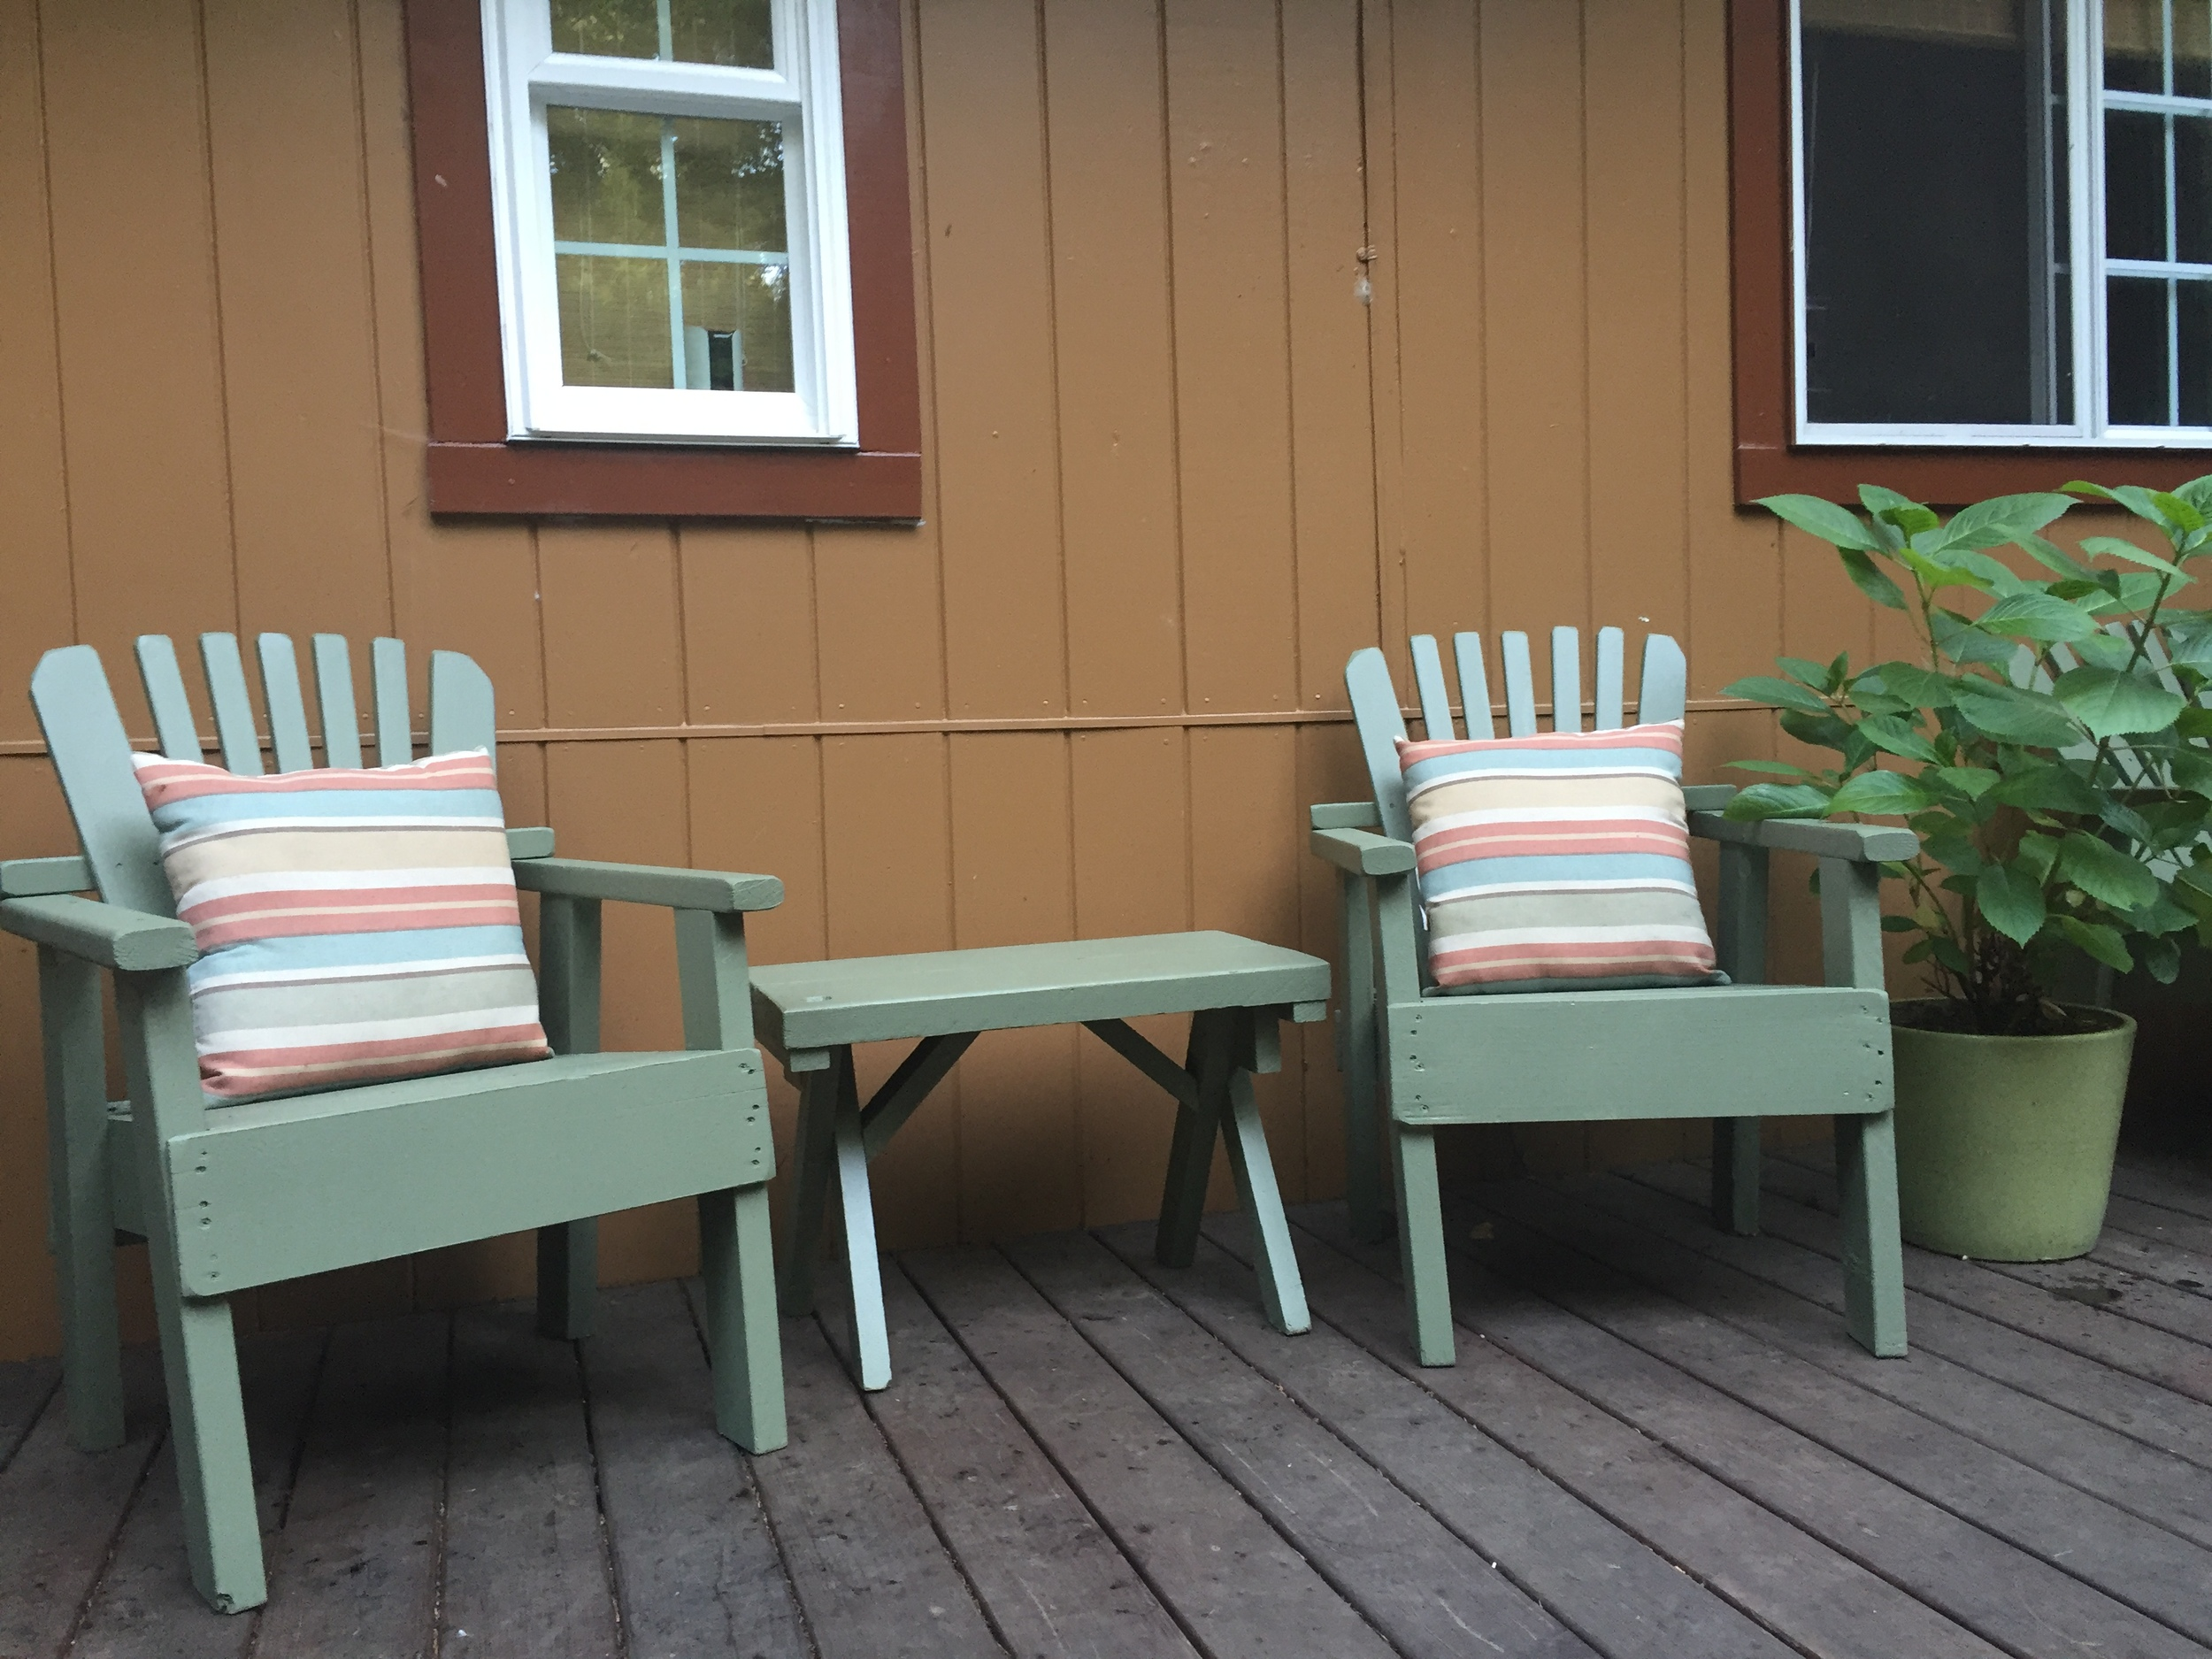 Patio-Furniture-after_heatherbyhand.JPG